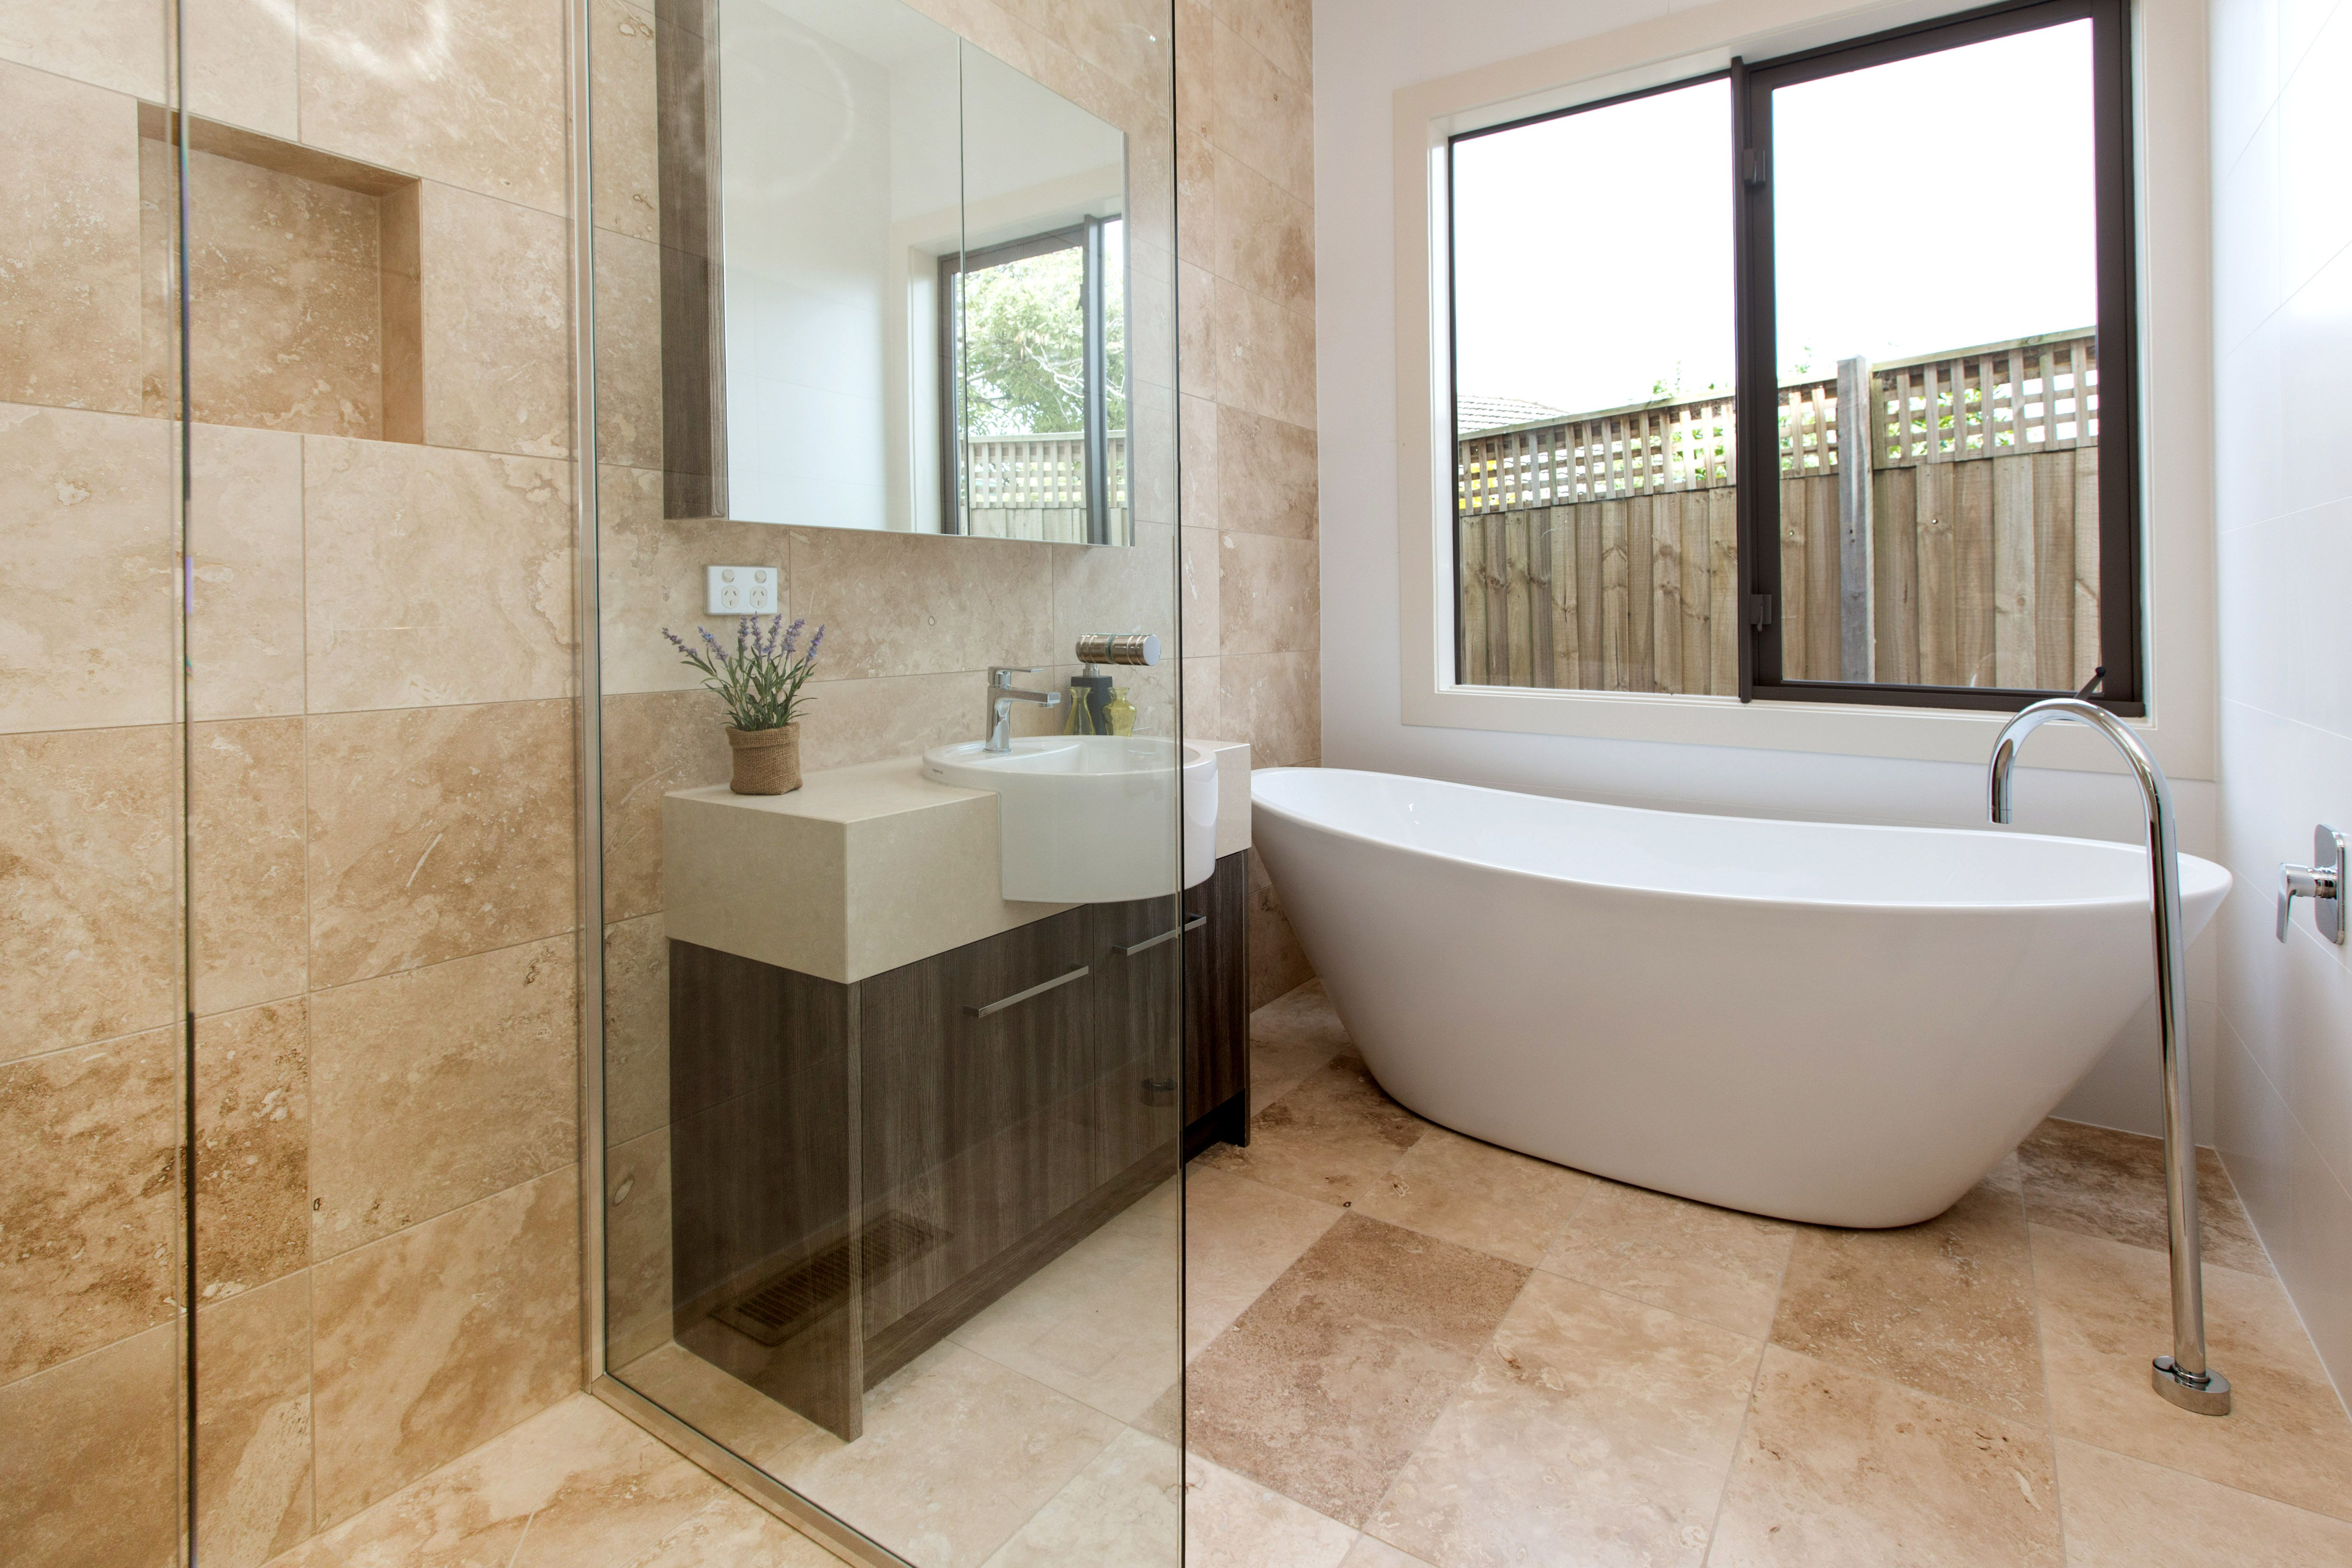 Downstairs bathroom pinterest white tiles and house stone floor but maybe white tiles dailygadgetfo Image collections